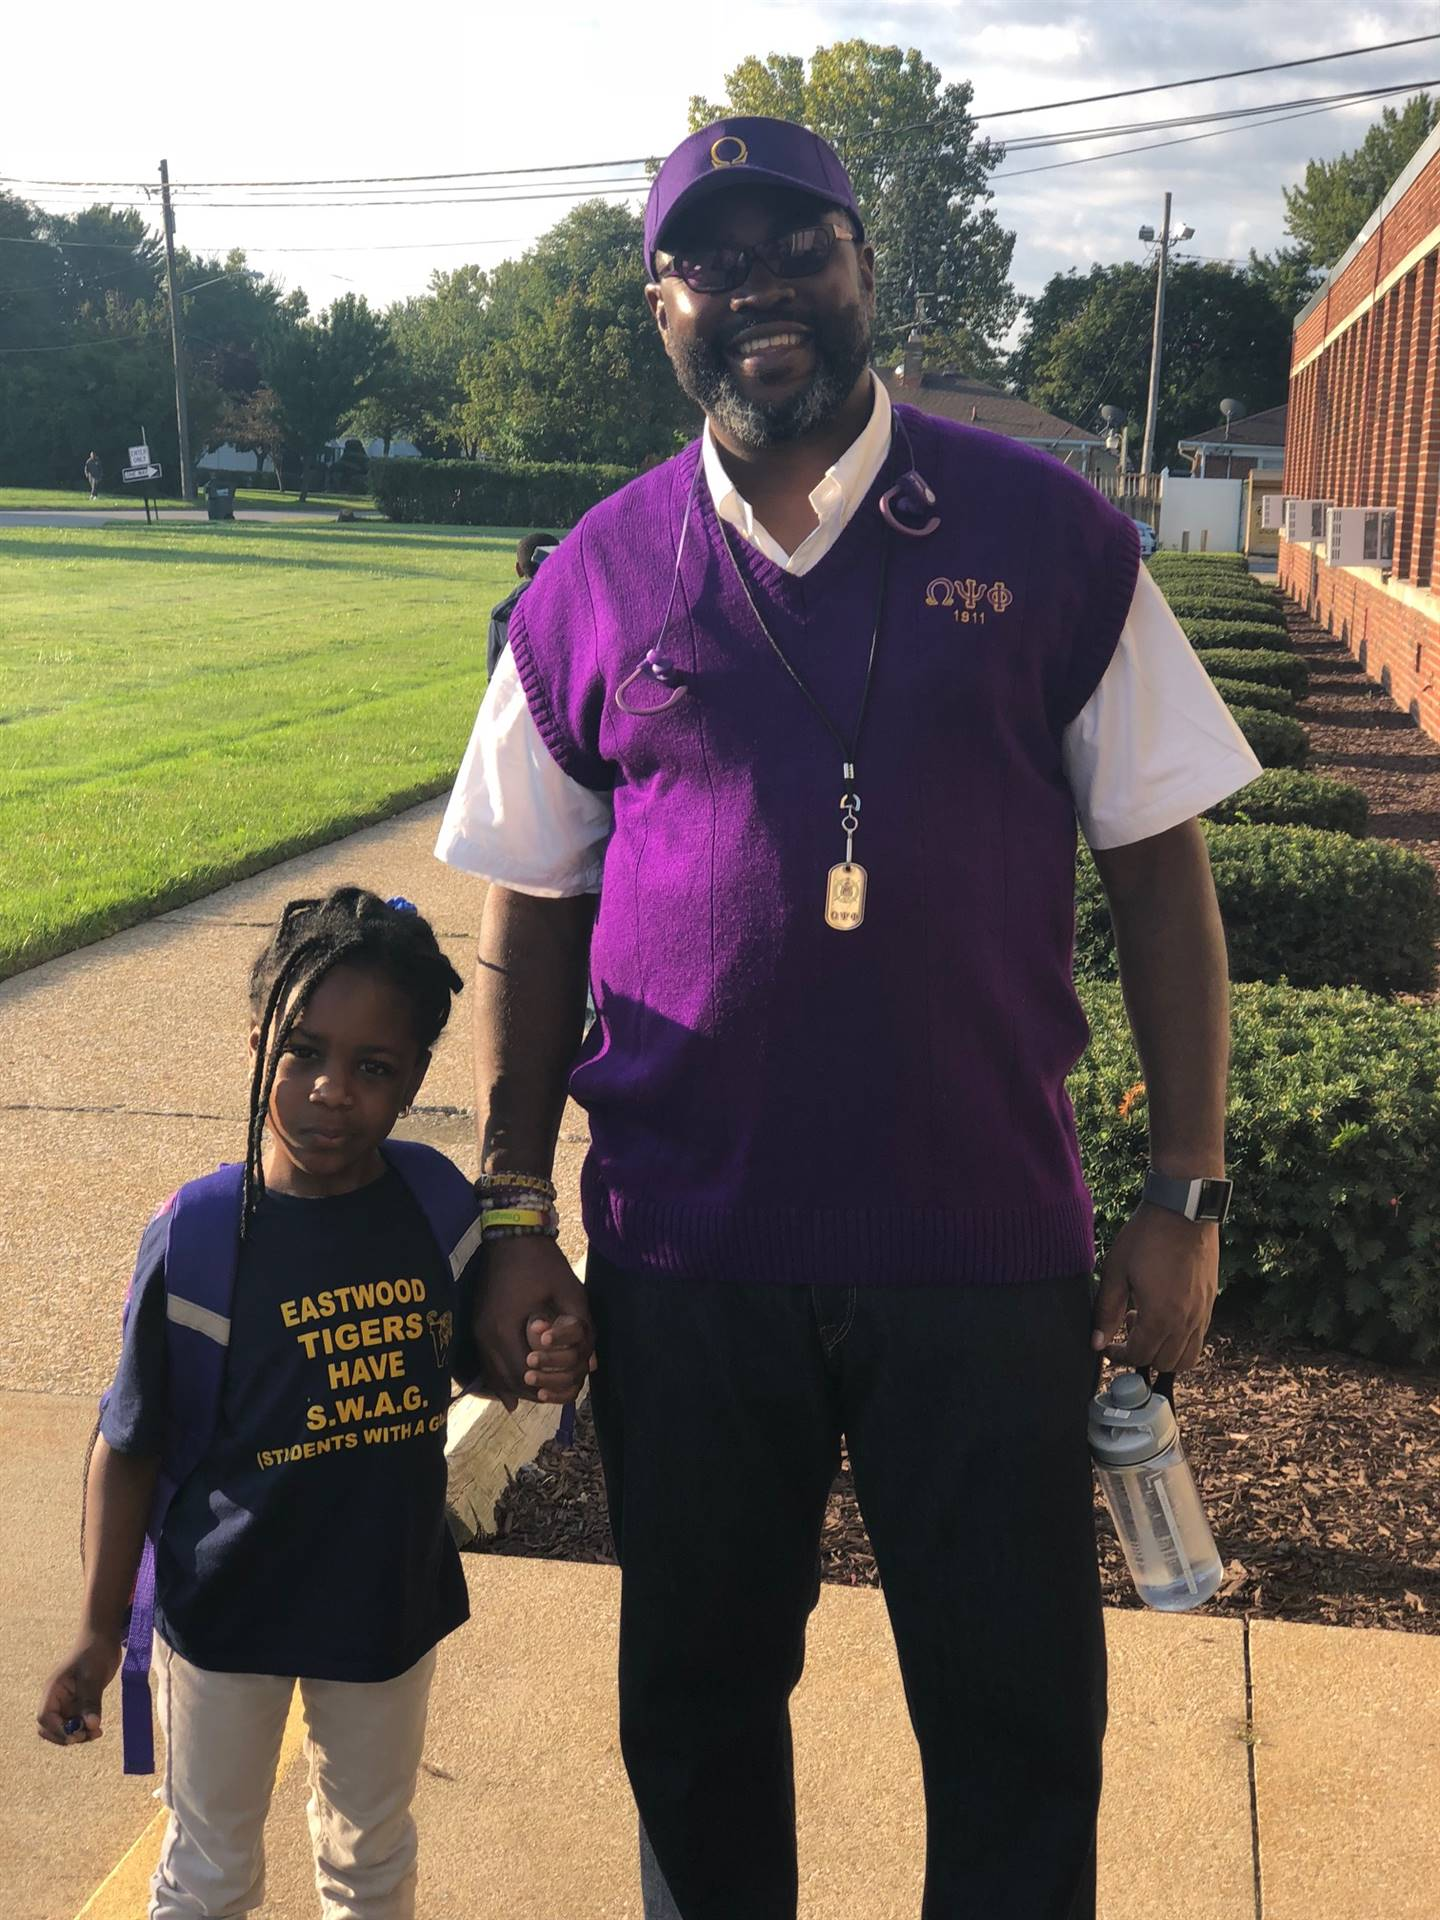 Mr. Roberts with Eastwood Scholar on Fathers Day Walk